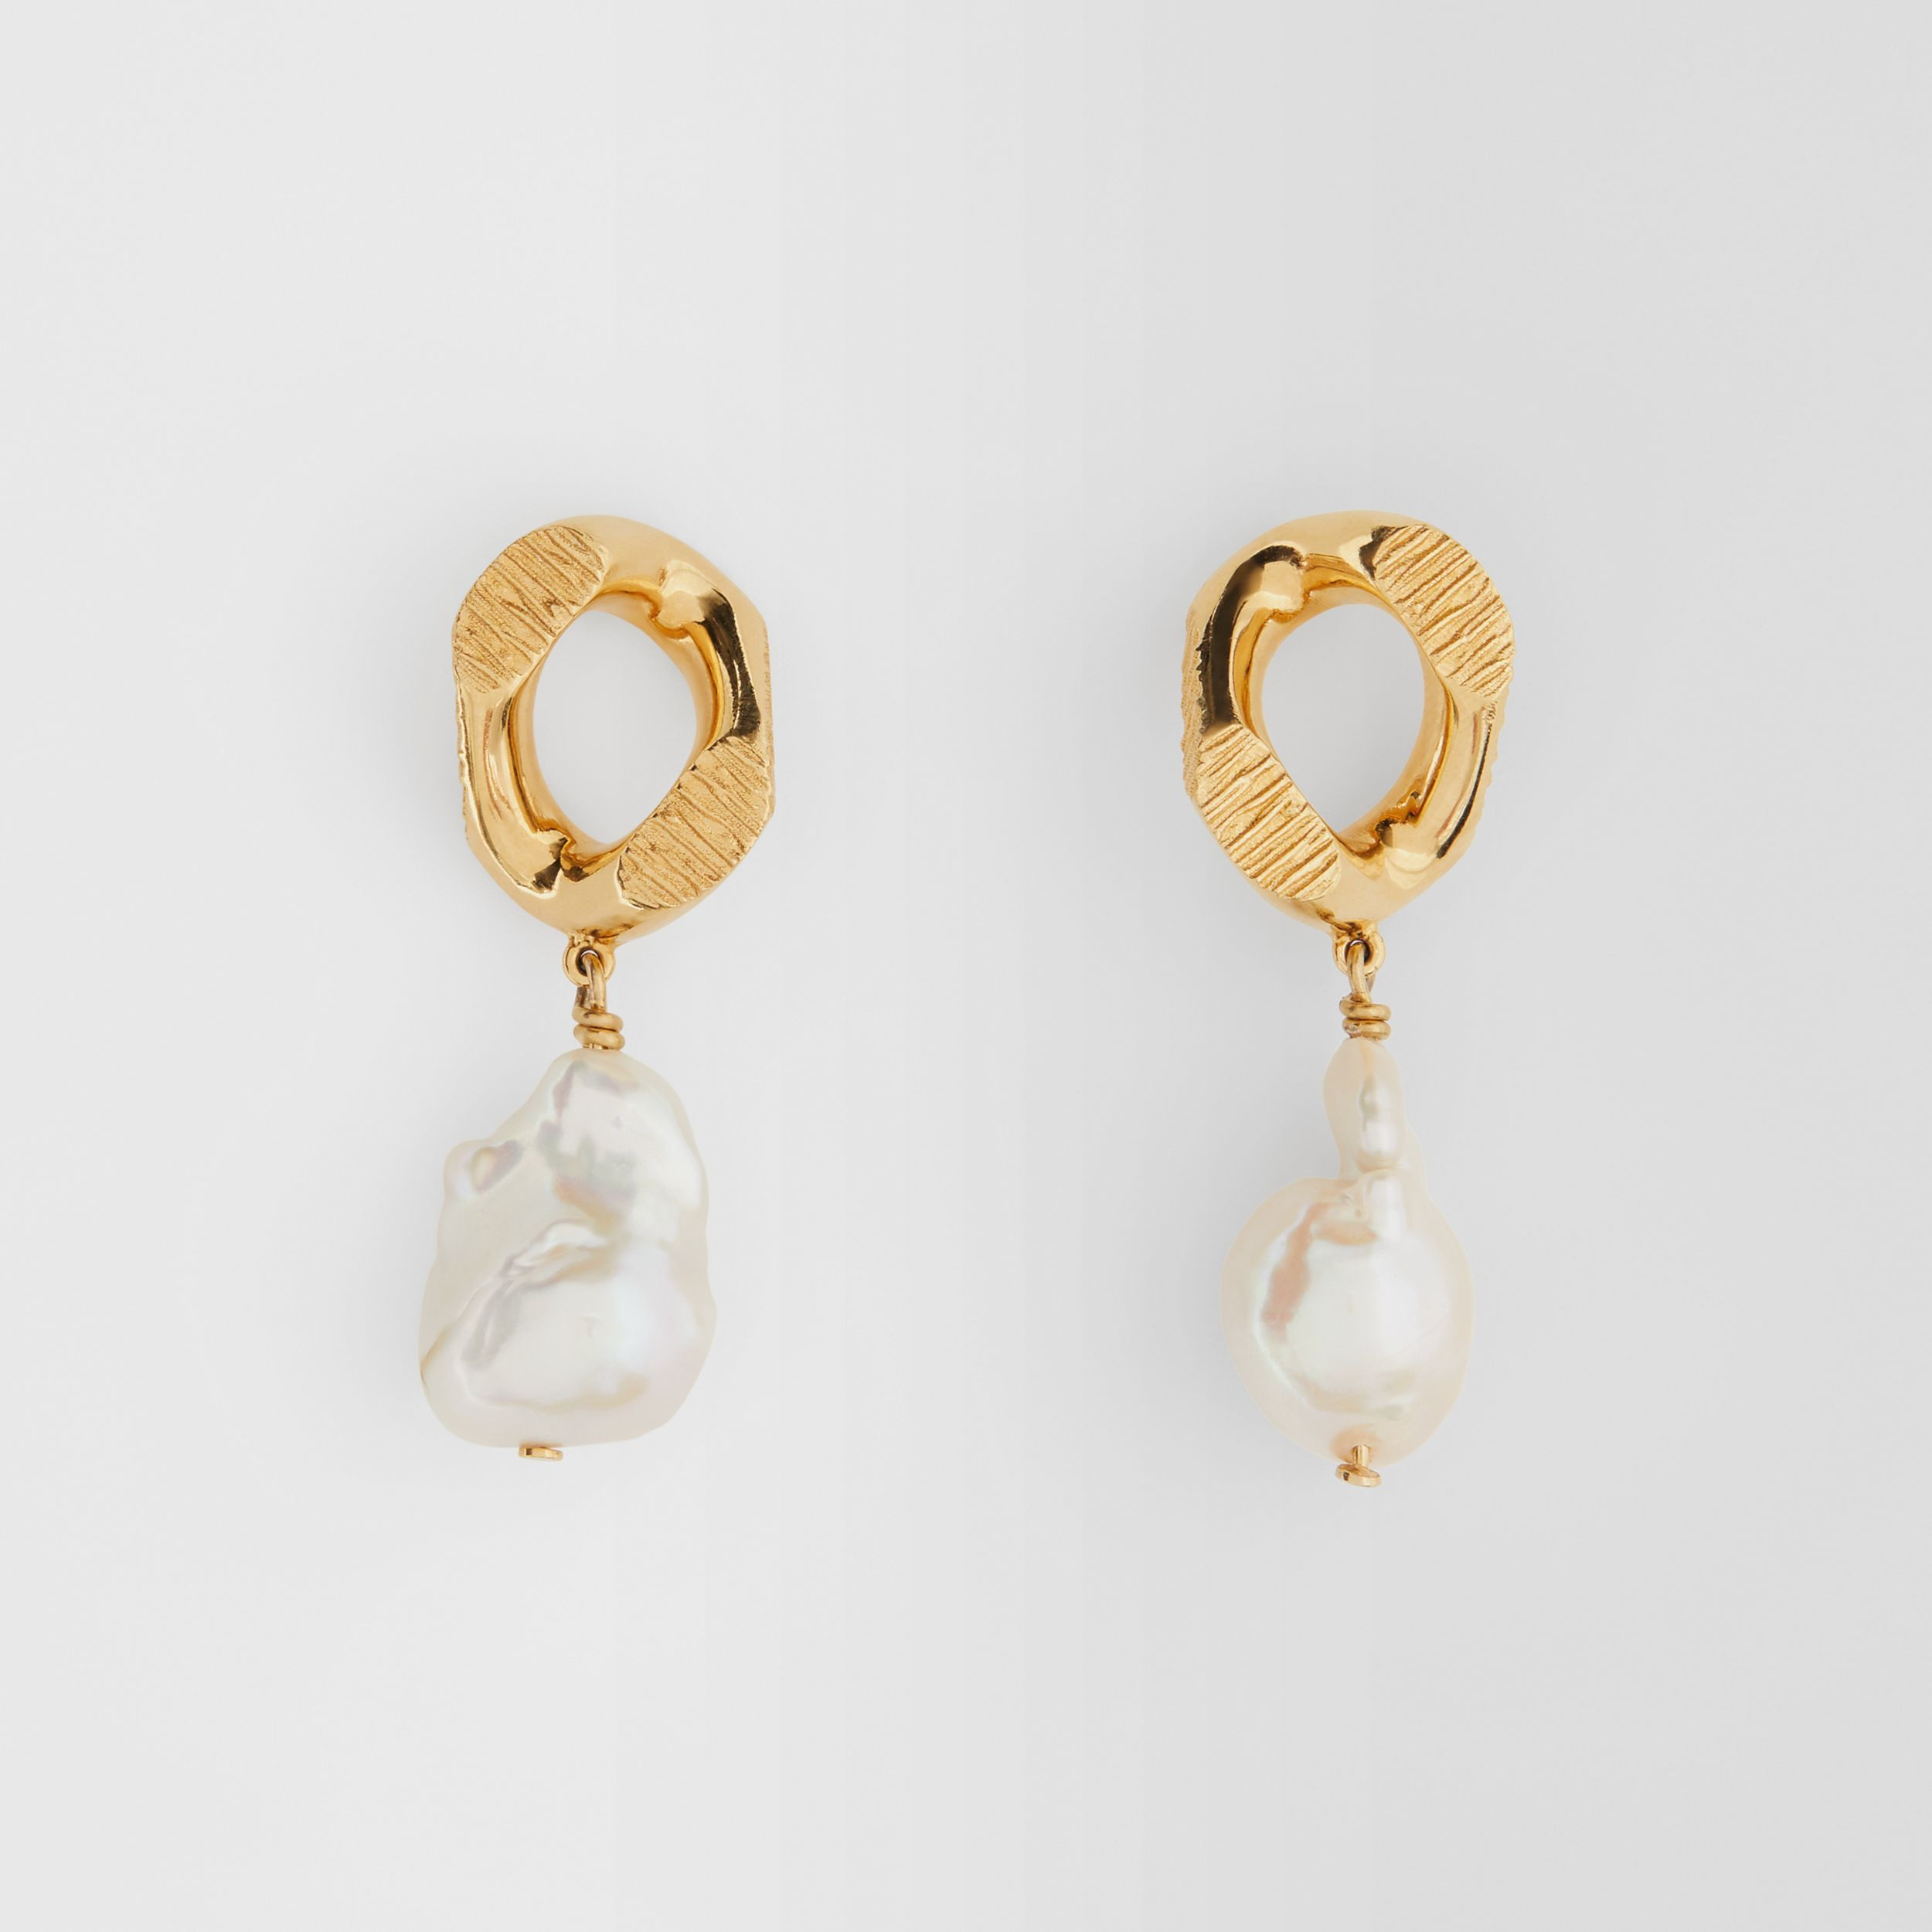 Pearl Detail Gold-plated Chain-link Earrings in Light Gold/white - Women | Burberry Canada - 1